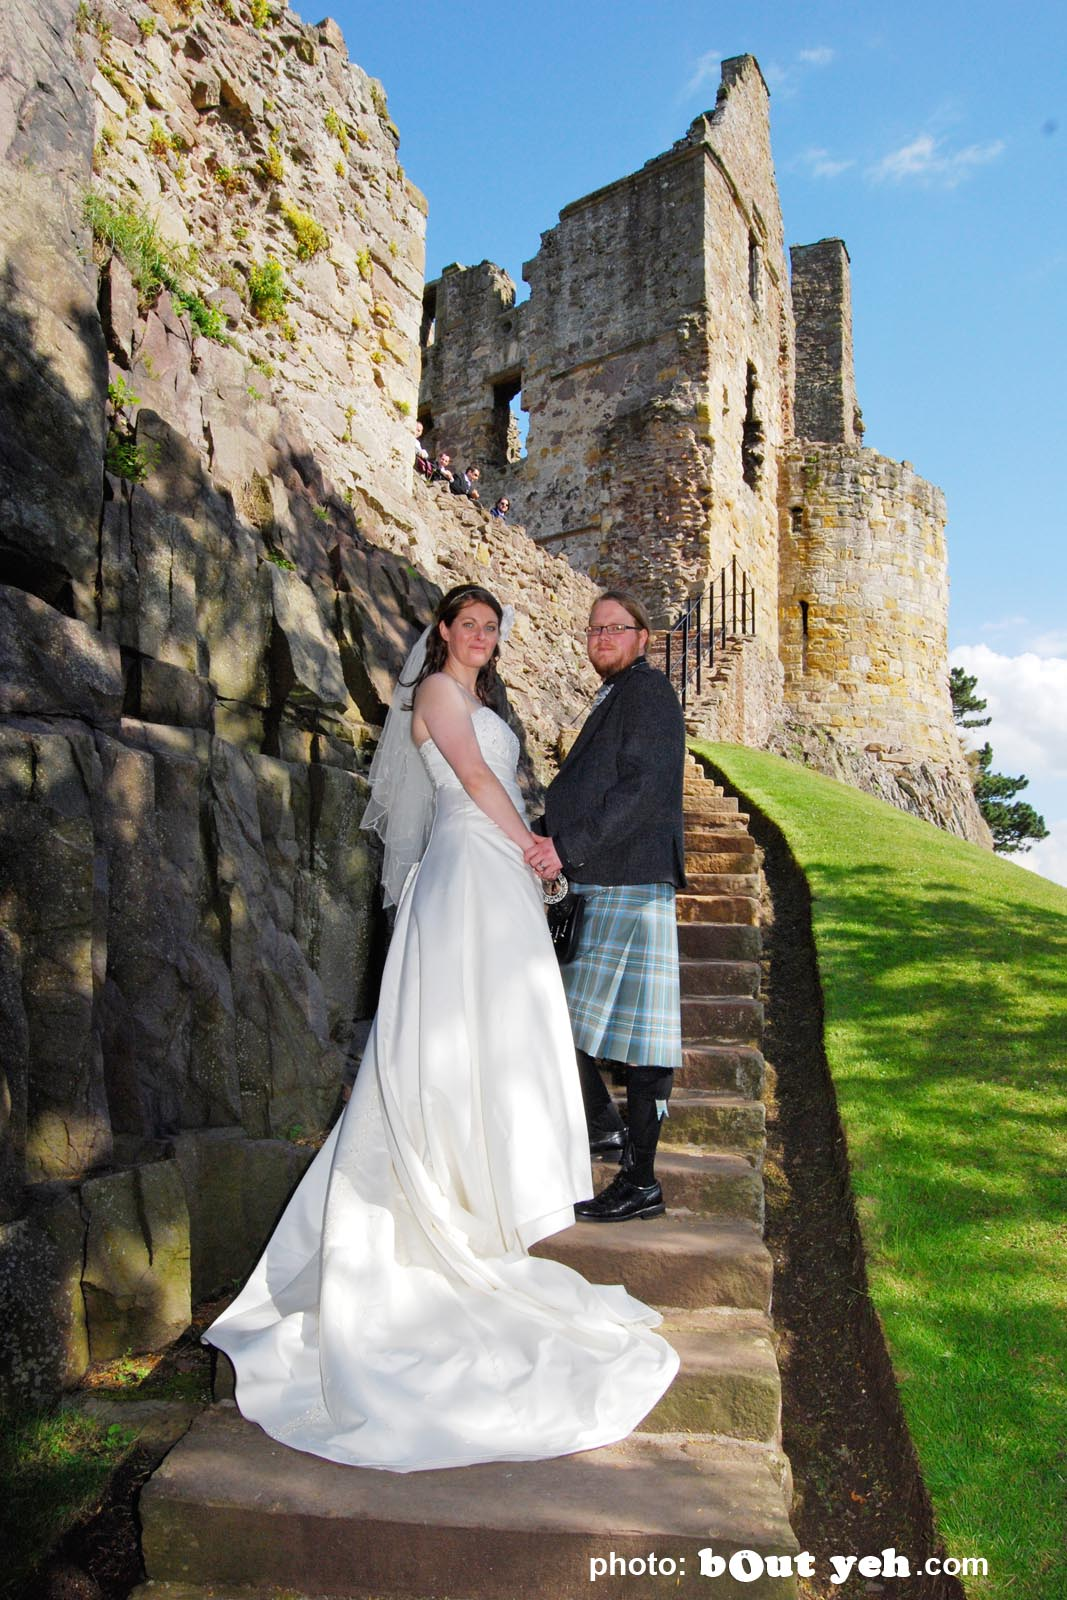 Davy and Niamh's wedding photographed by Bout Yeh wedding photographers and video services Belfast and Northern Ireland. Photo 2159